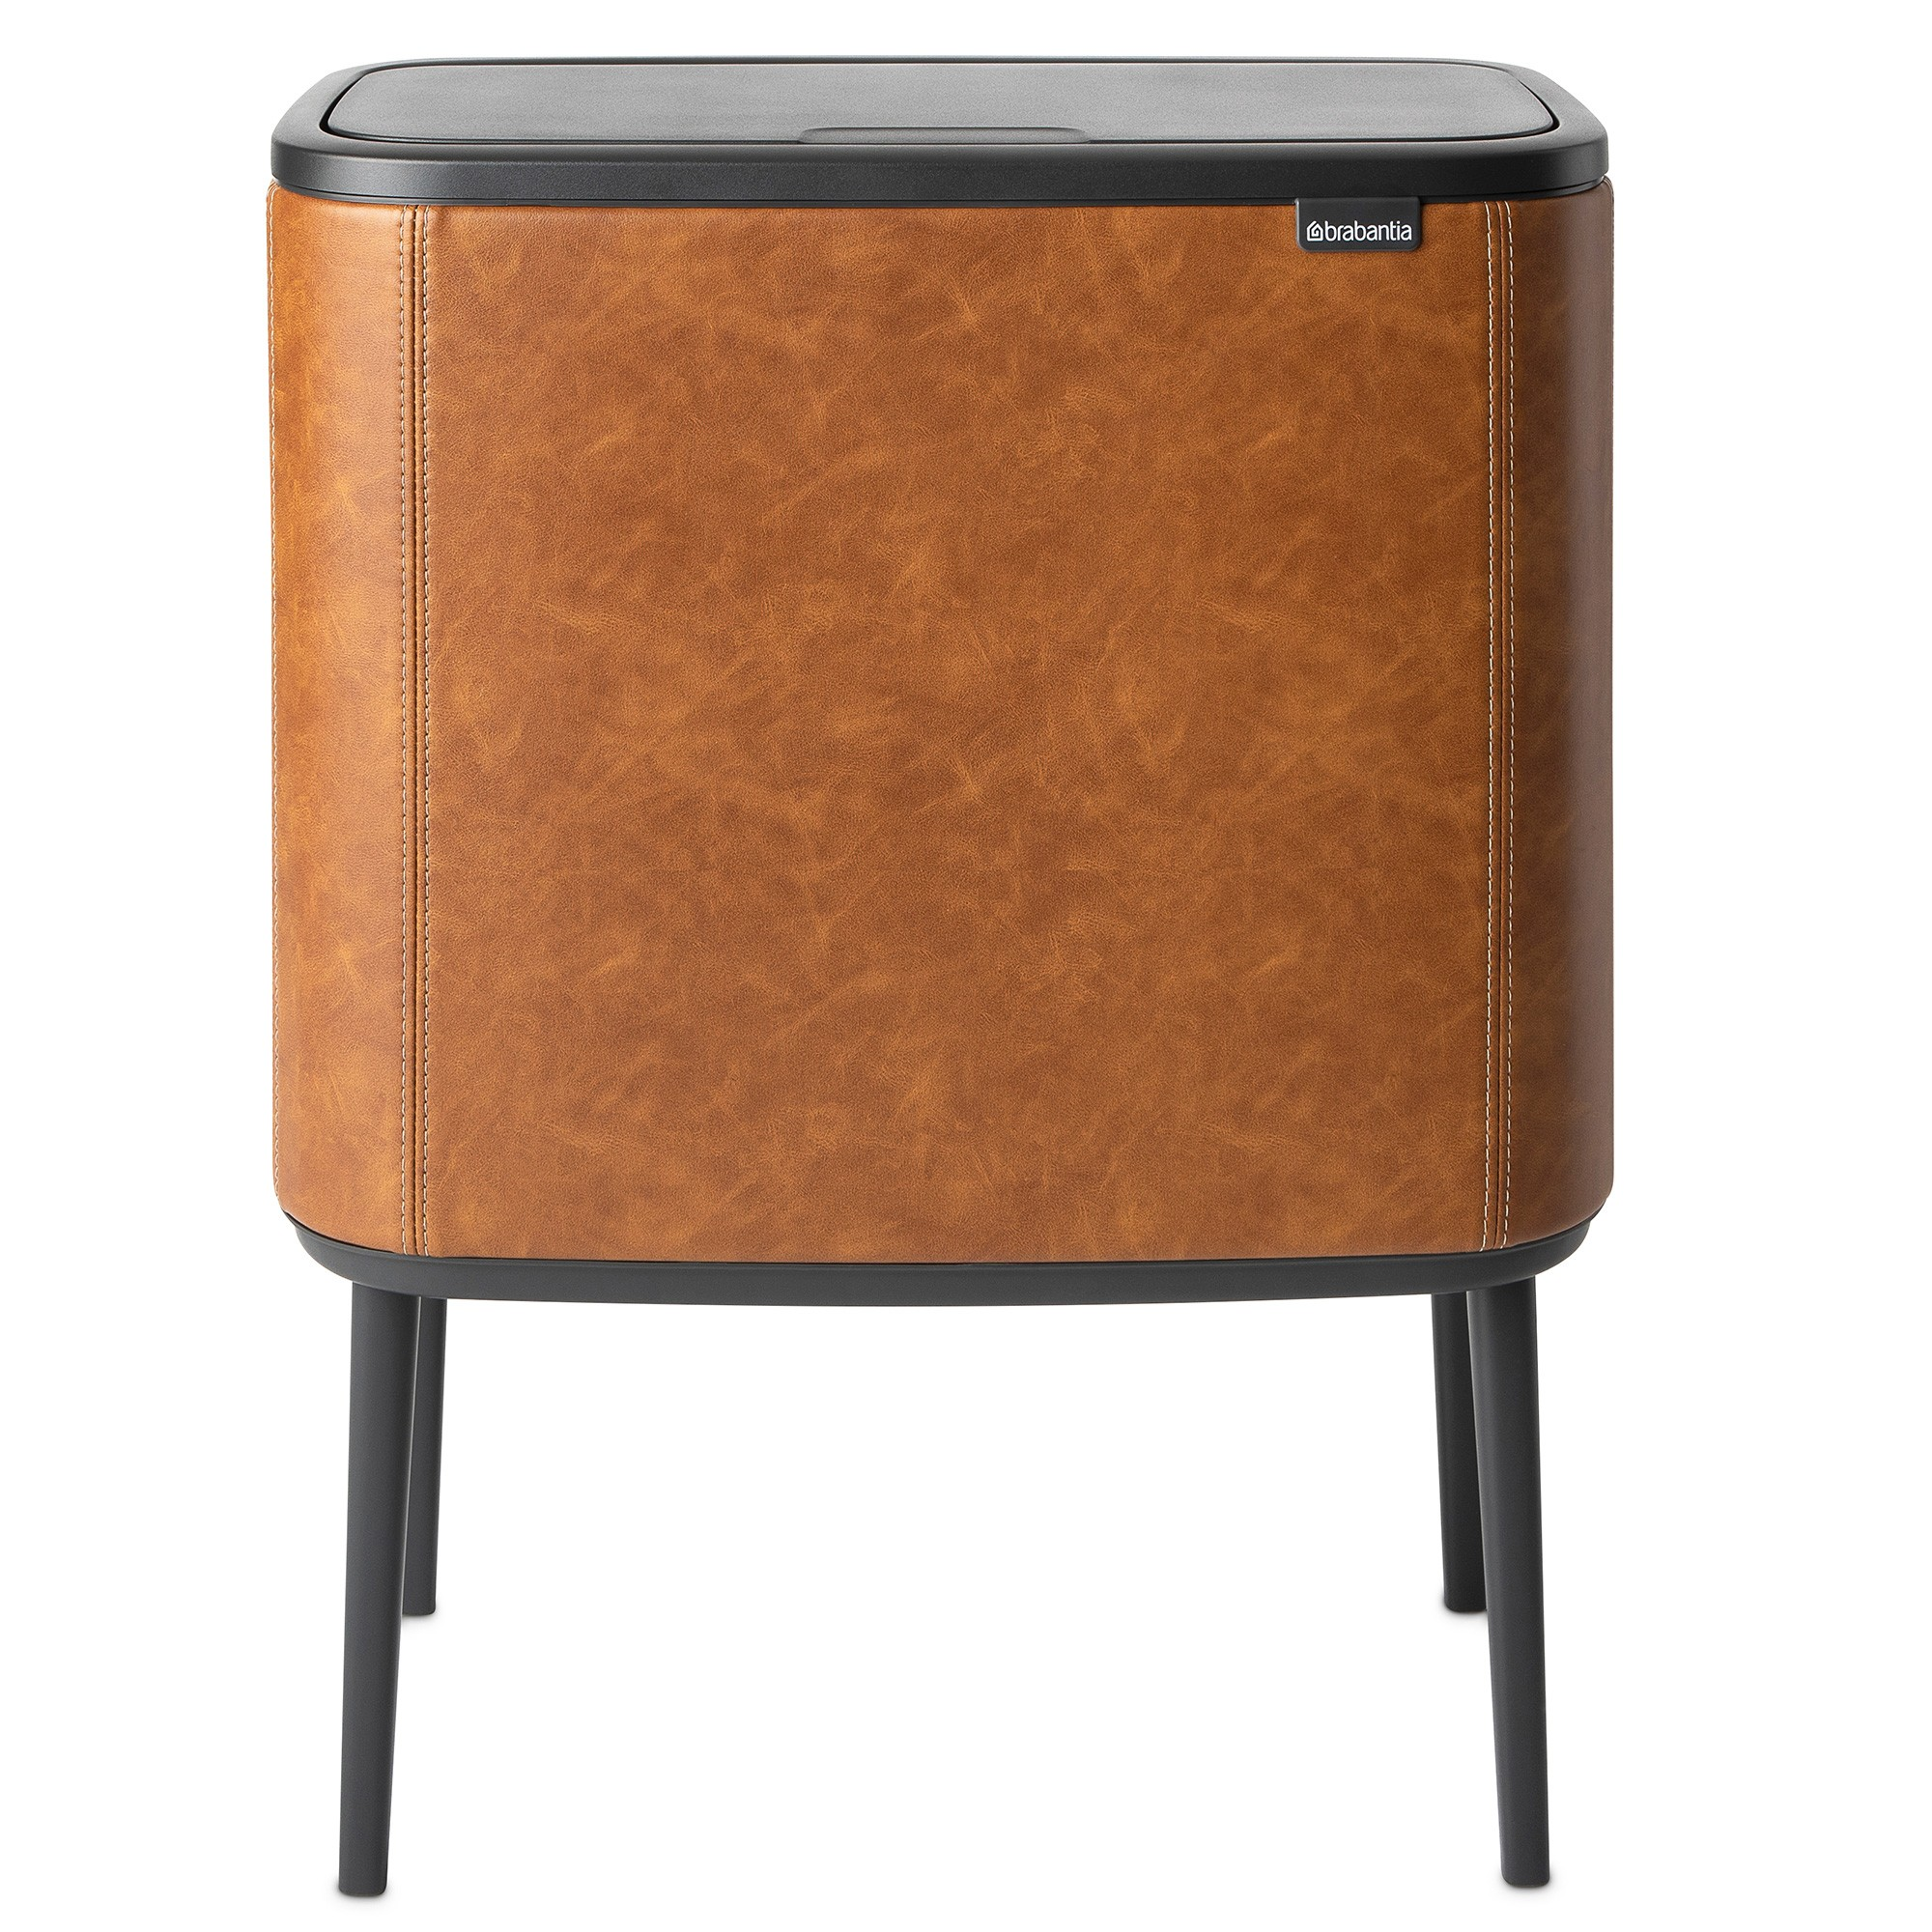 Brabantia BO Limited Edition Vegan Leather Touch Waste Bin, 11/23 Liter, Cognac